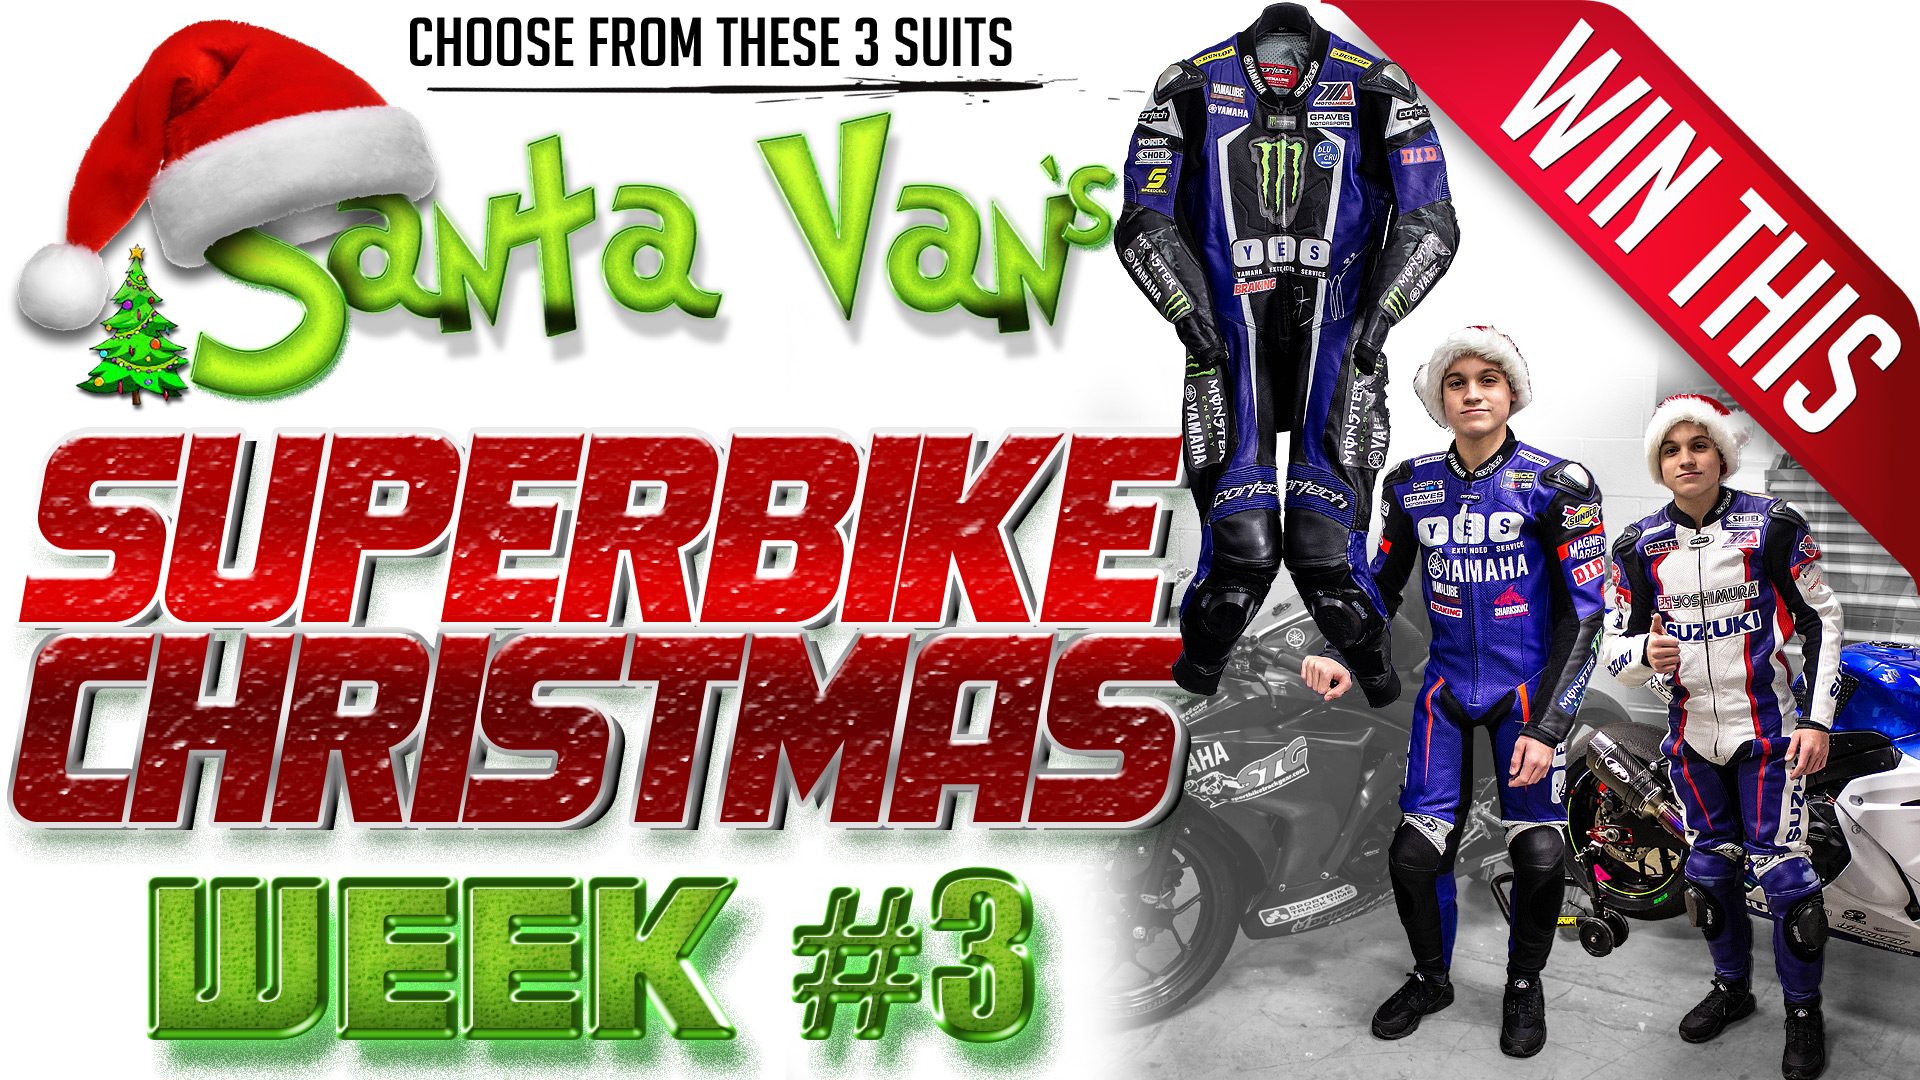 Win One of These 3 Cortech Race Suits